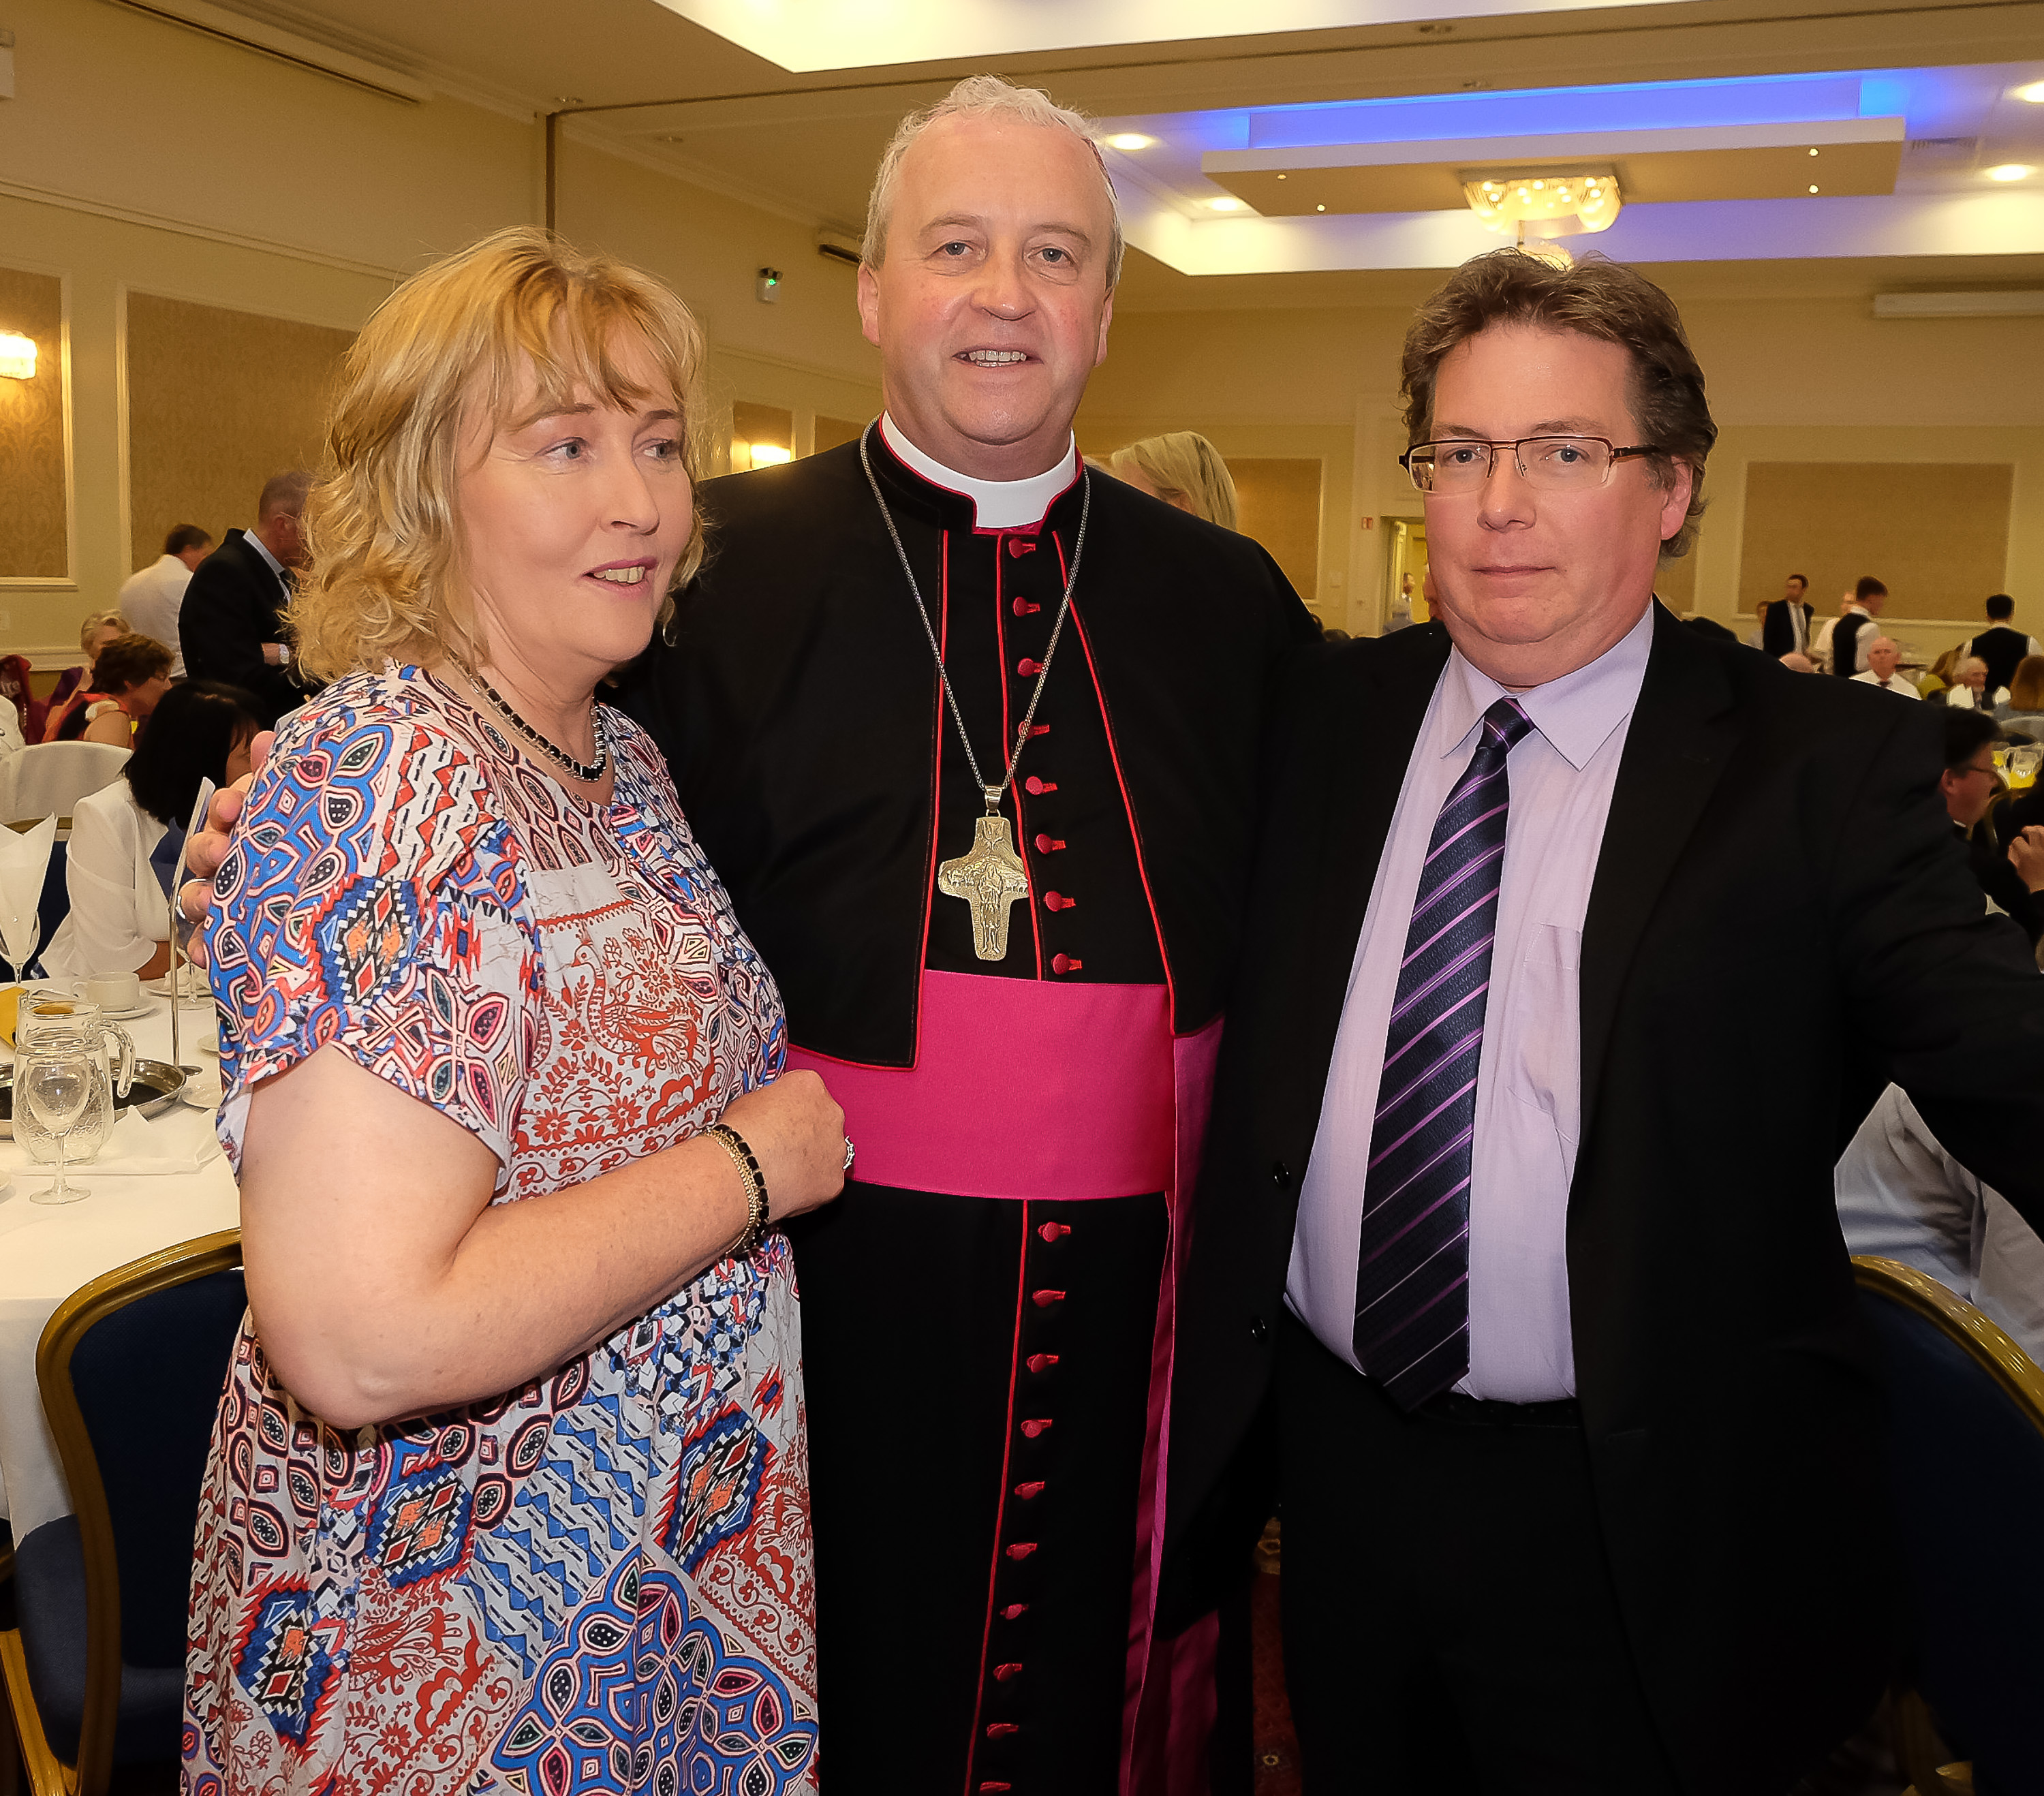 Geraldine and Alexis Sheridan with the new Bishop Michael Router at a celebration dinner following the Bishop's Ordination